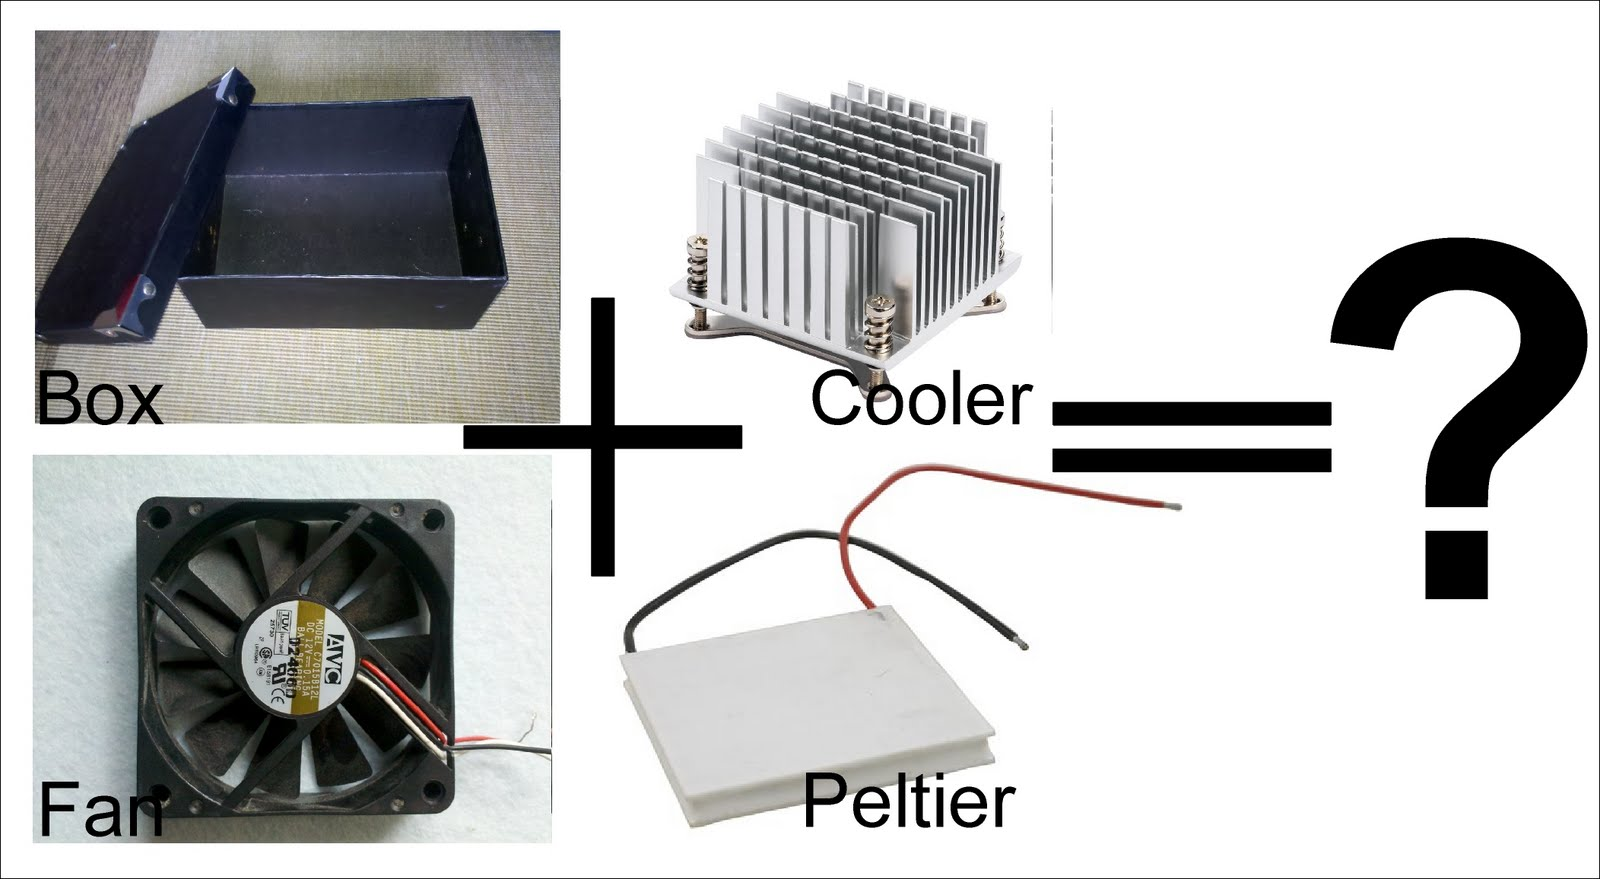 Do it yourself gadgets airconditioning for the cheap july 2 2011 solutioingenieria Images